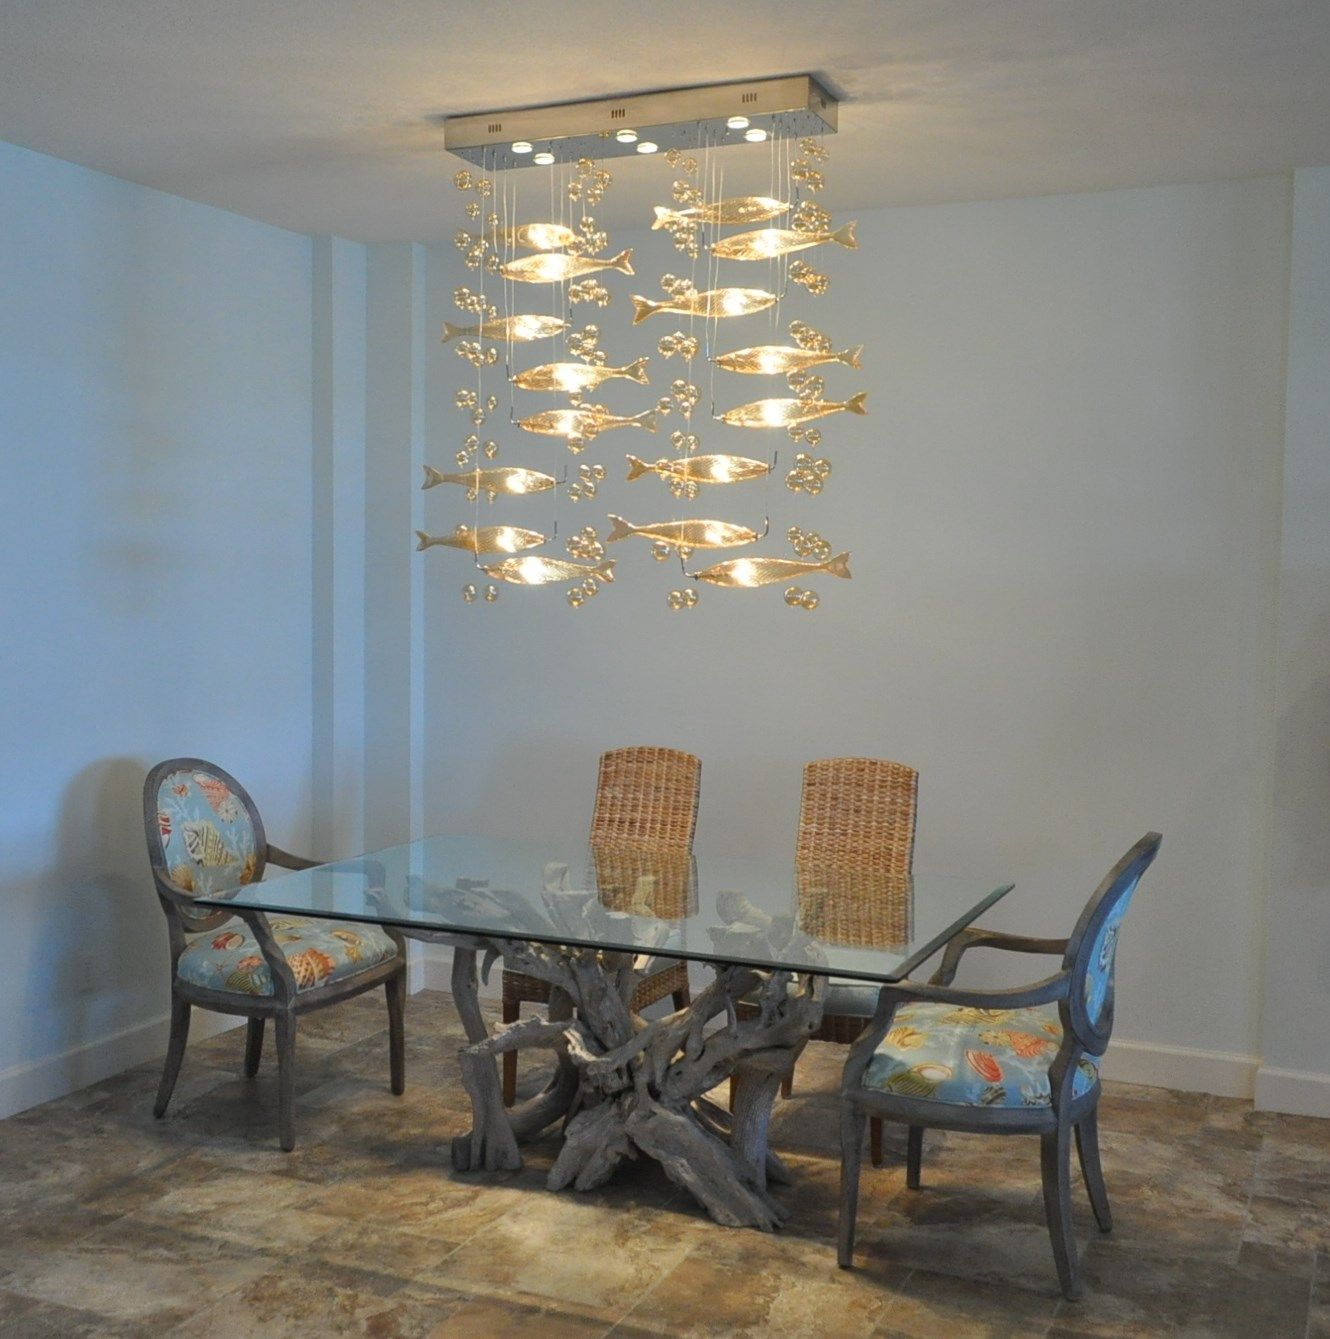 Driftwood dining table can be made by www.anythingdriftwood.weebly.com from FL Keys driftwood.